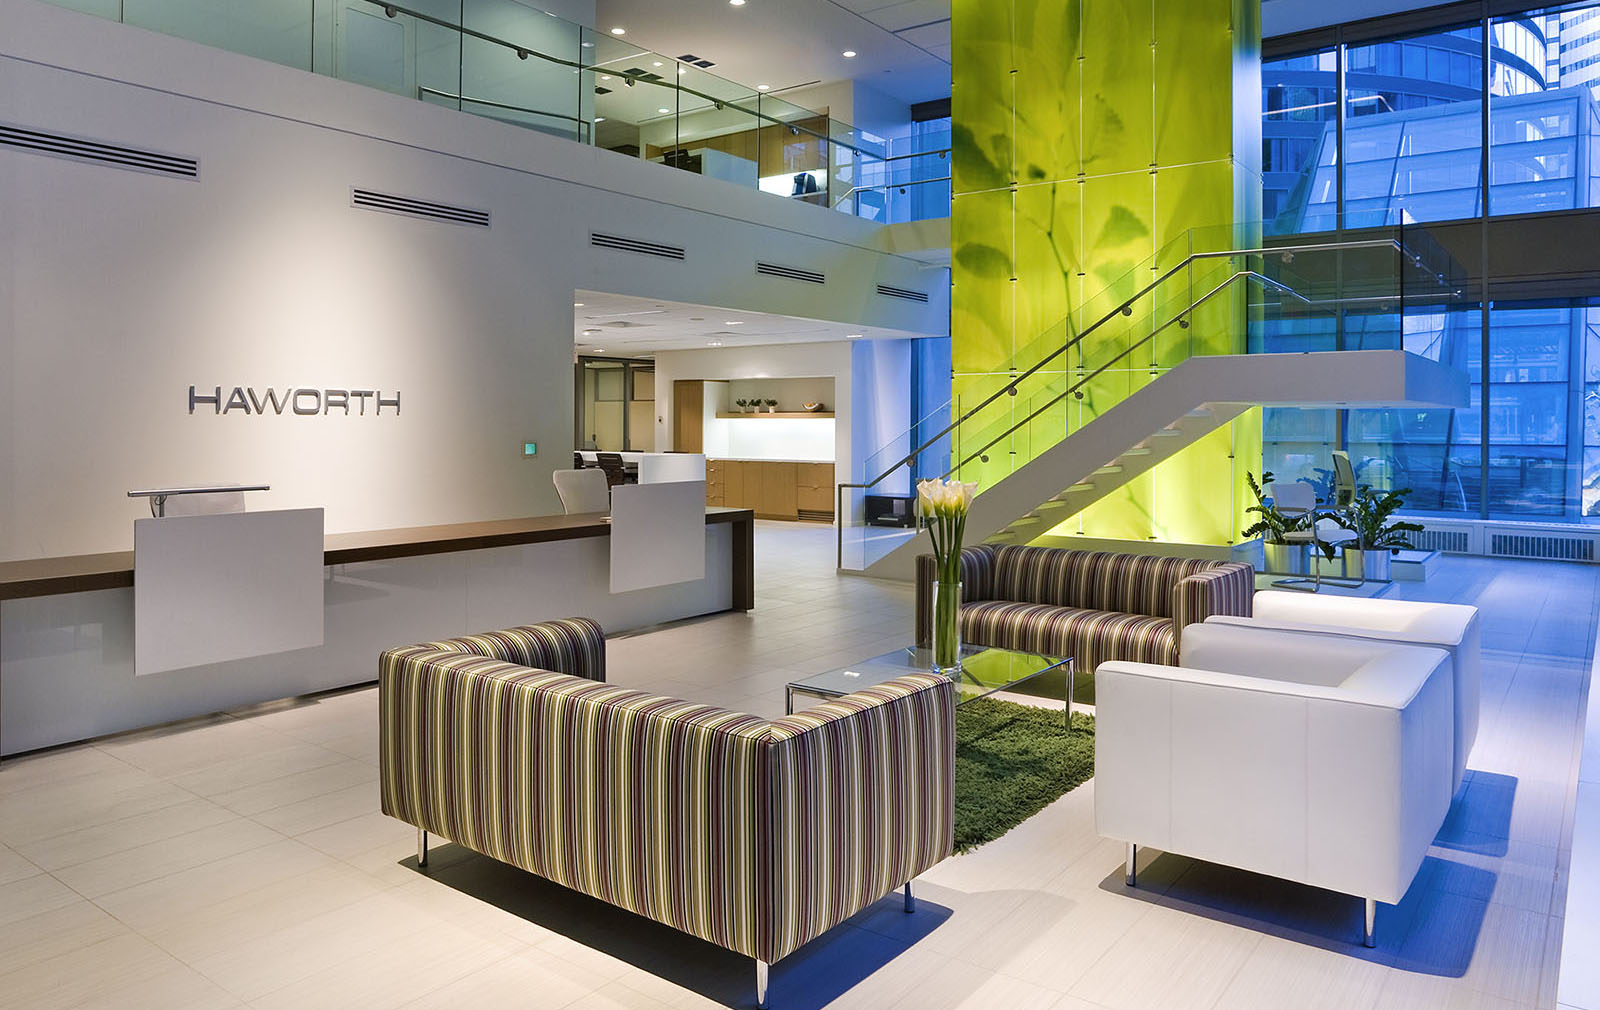 Haworth office furniture showrooms, Toronto, Ontario